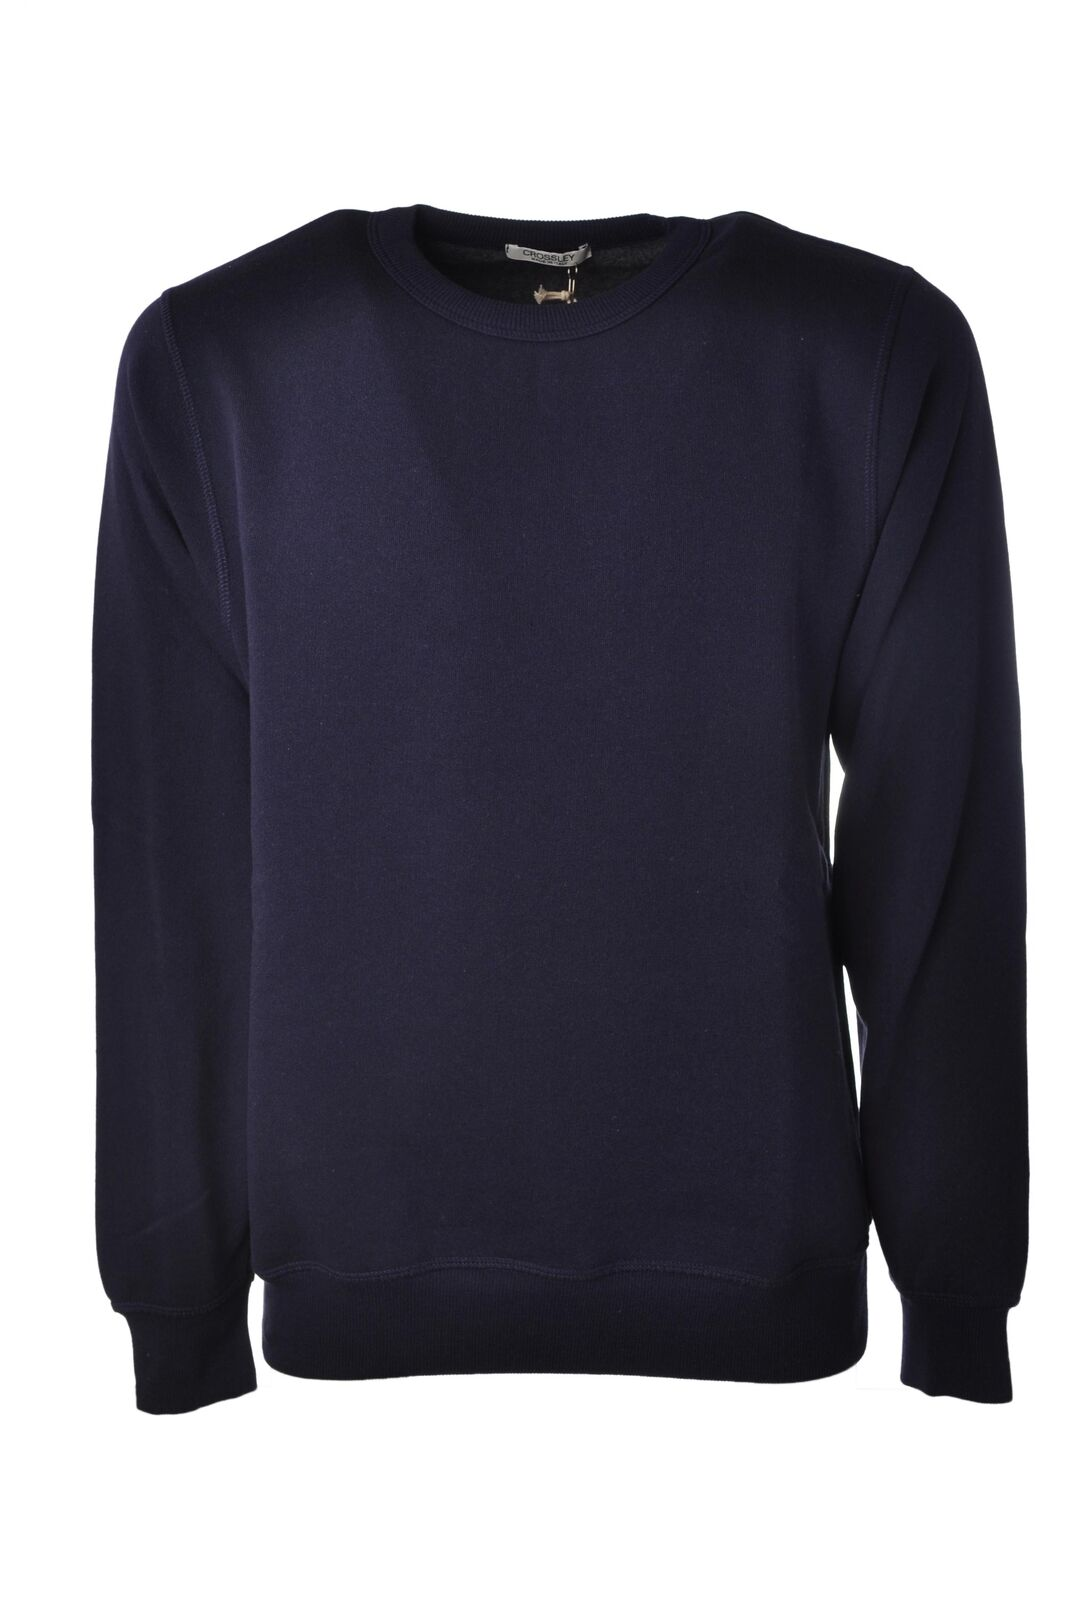 CROSSLEY  -  Sweaters - Male - Blau - 4089909B185833